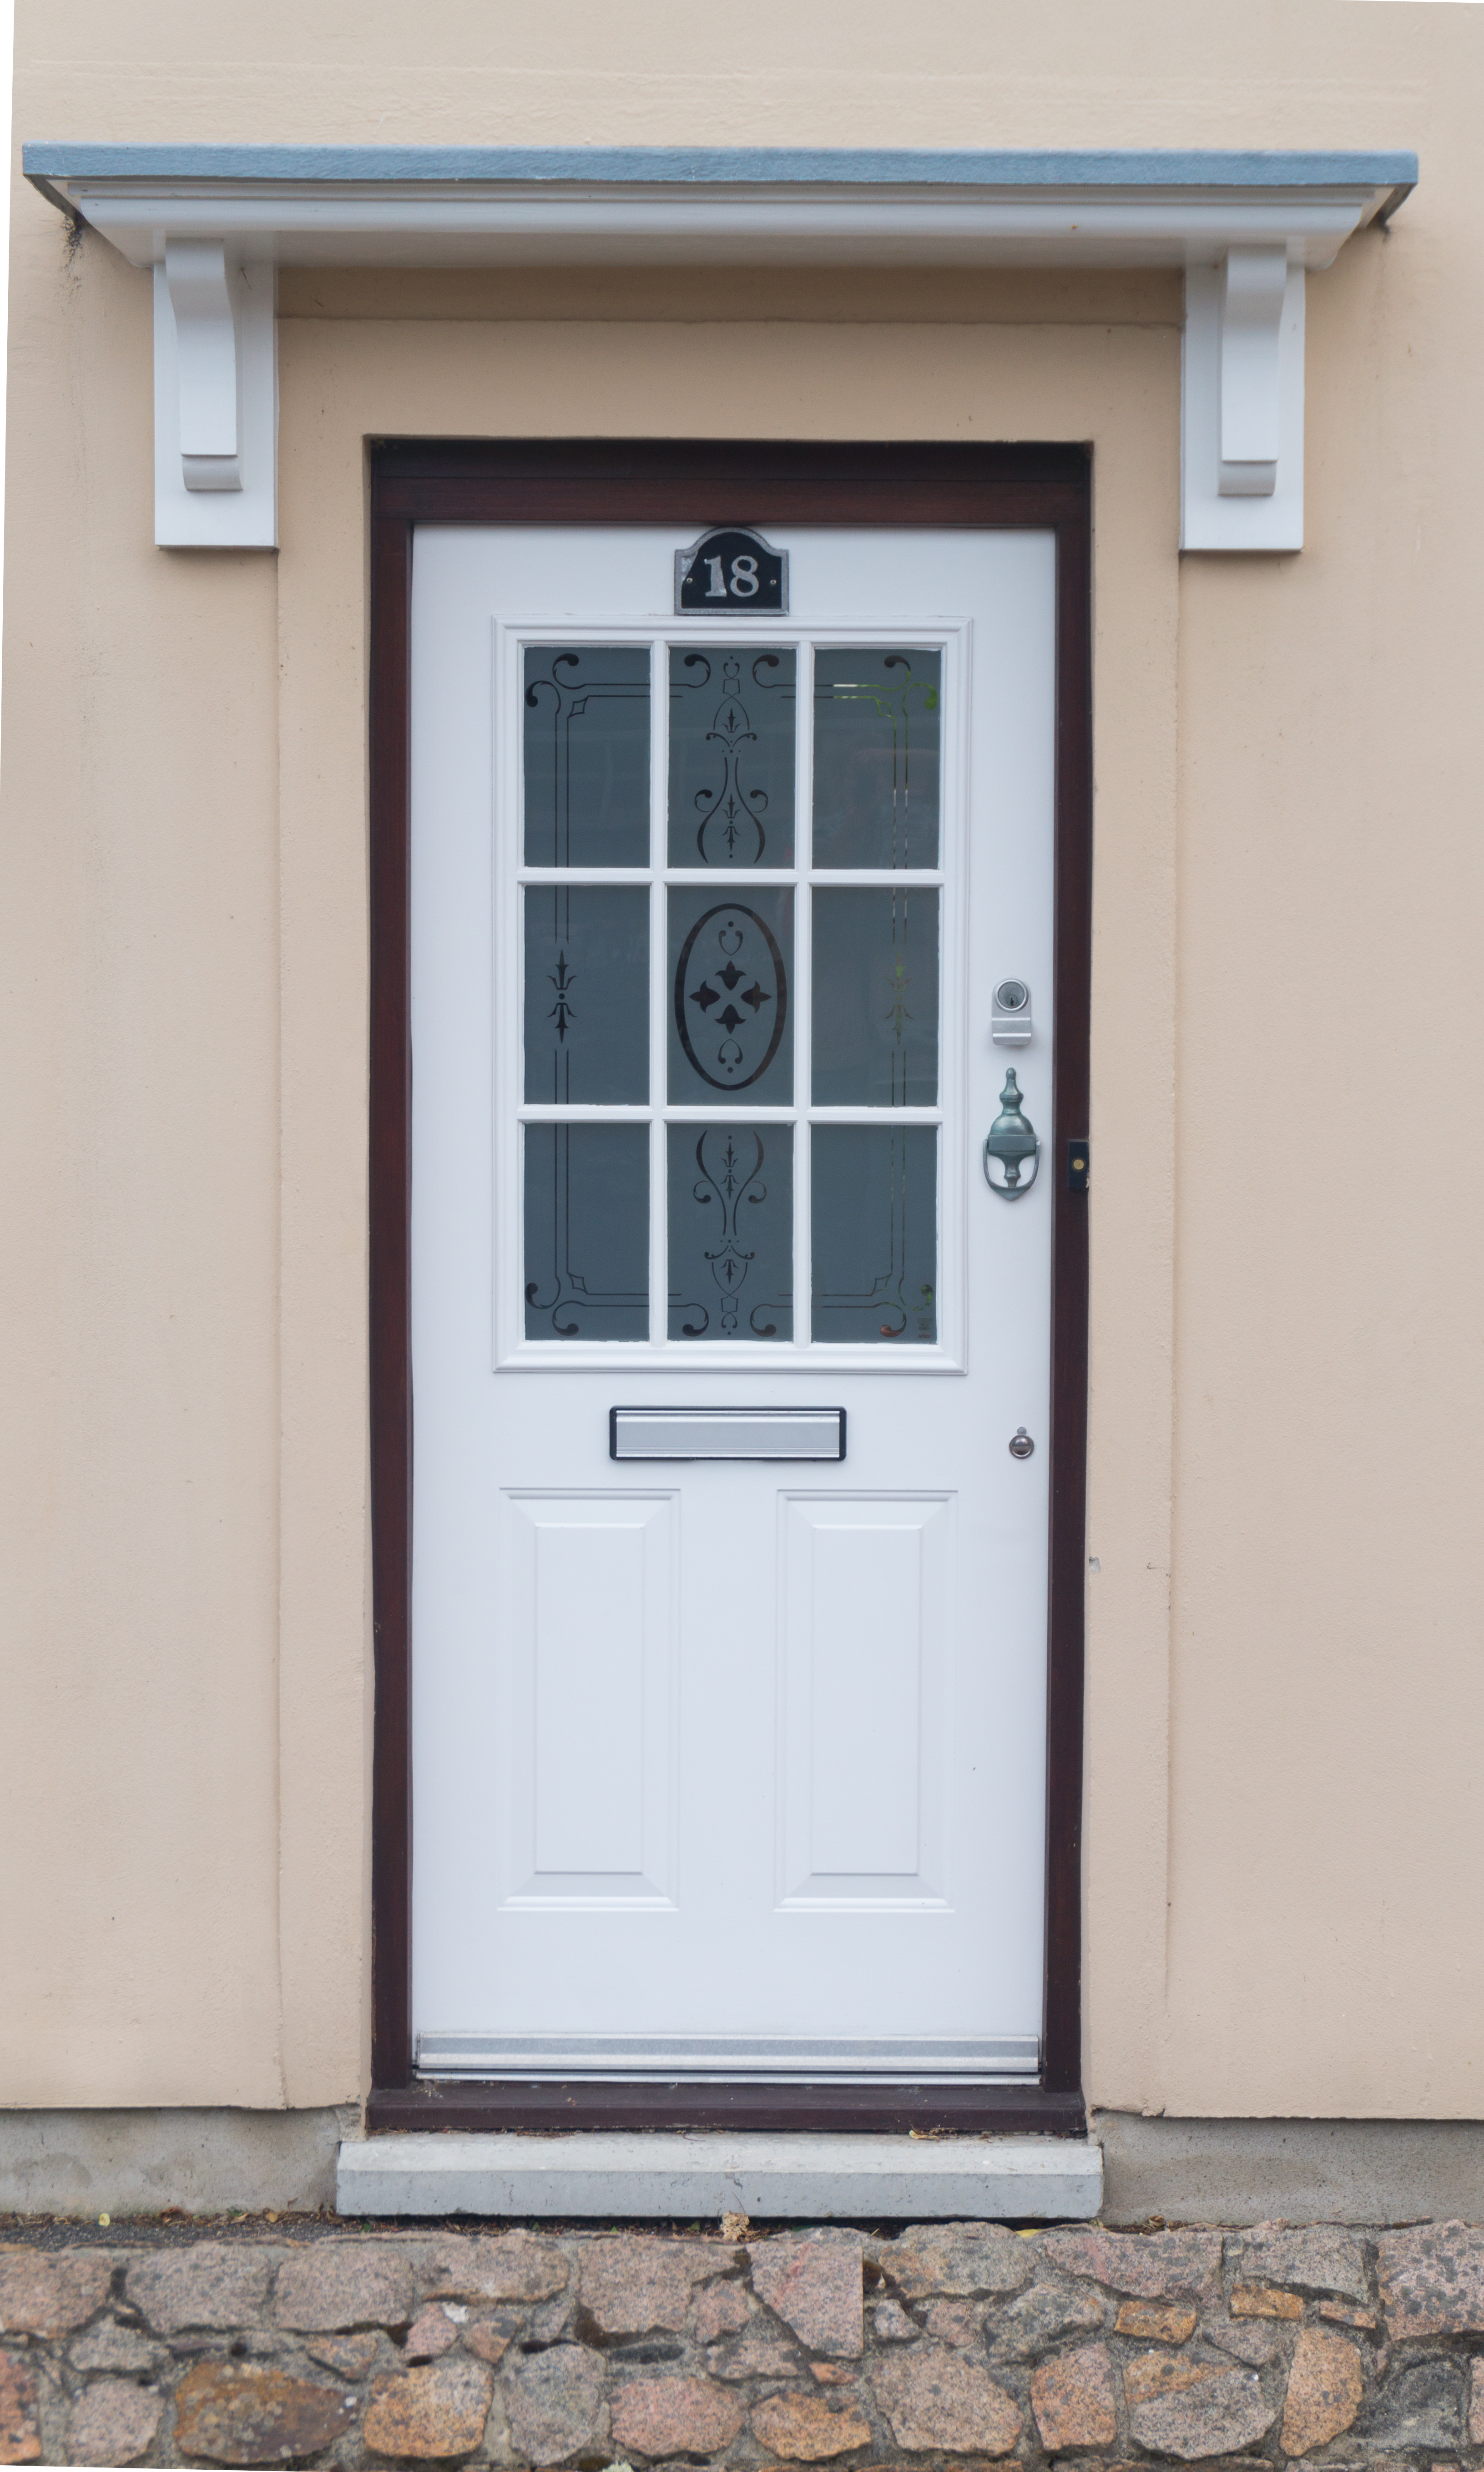 Plastic White Door With Glass Doors Texturify Free